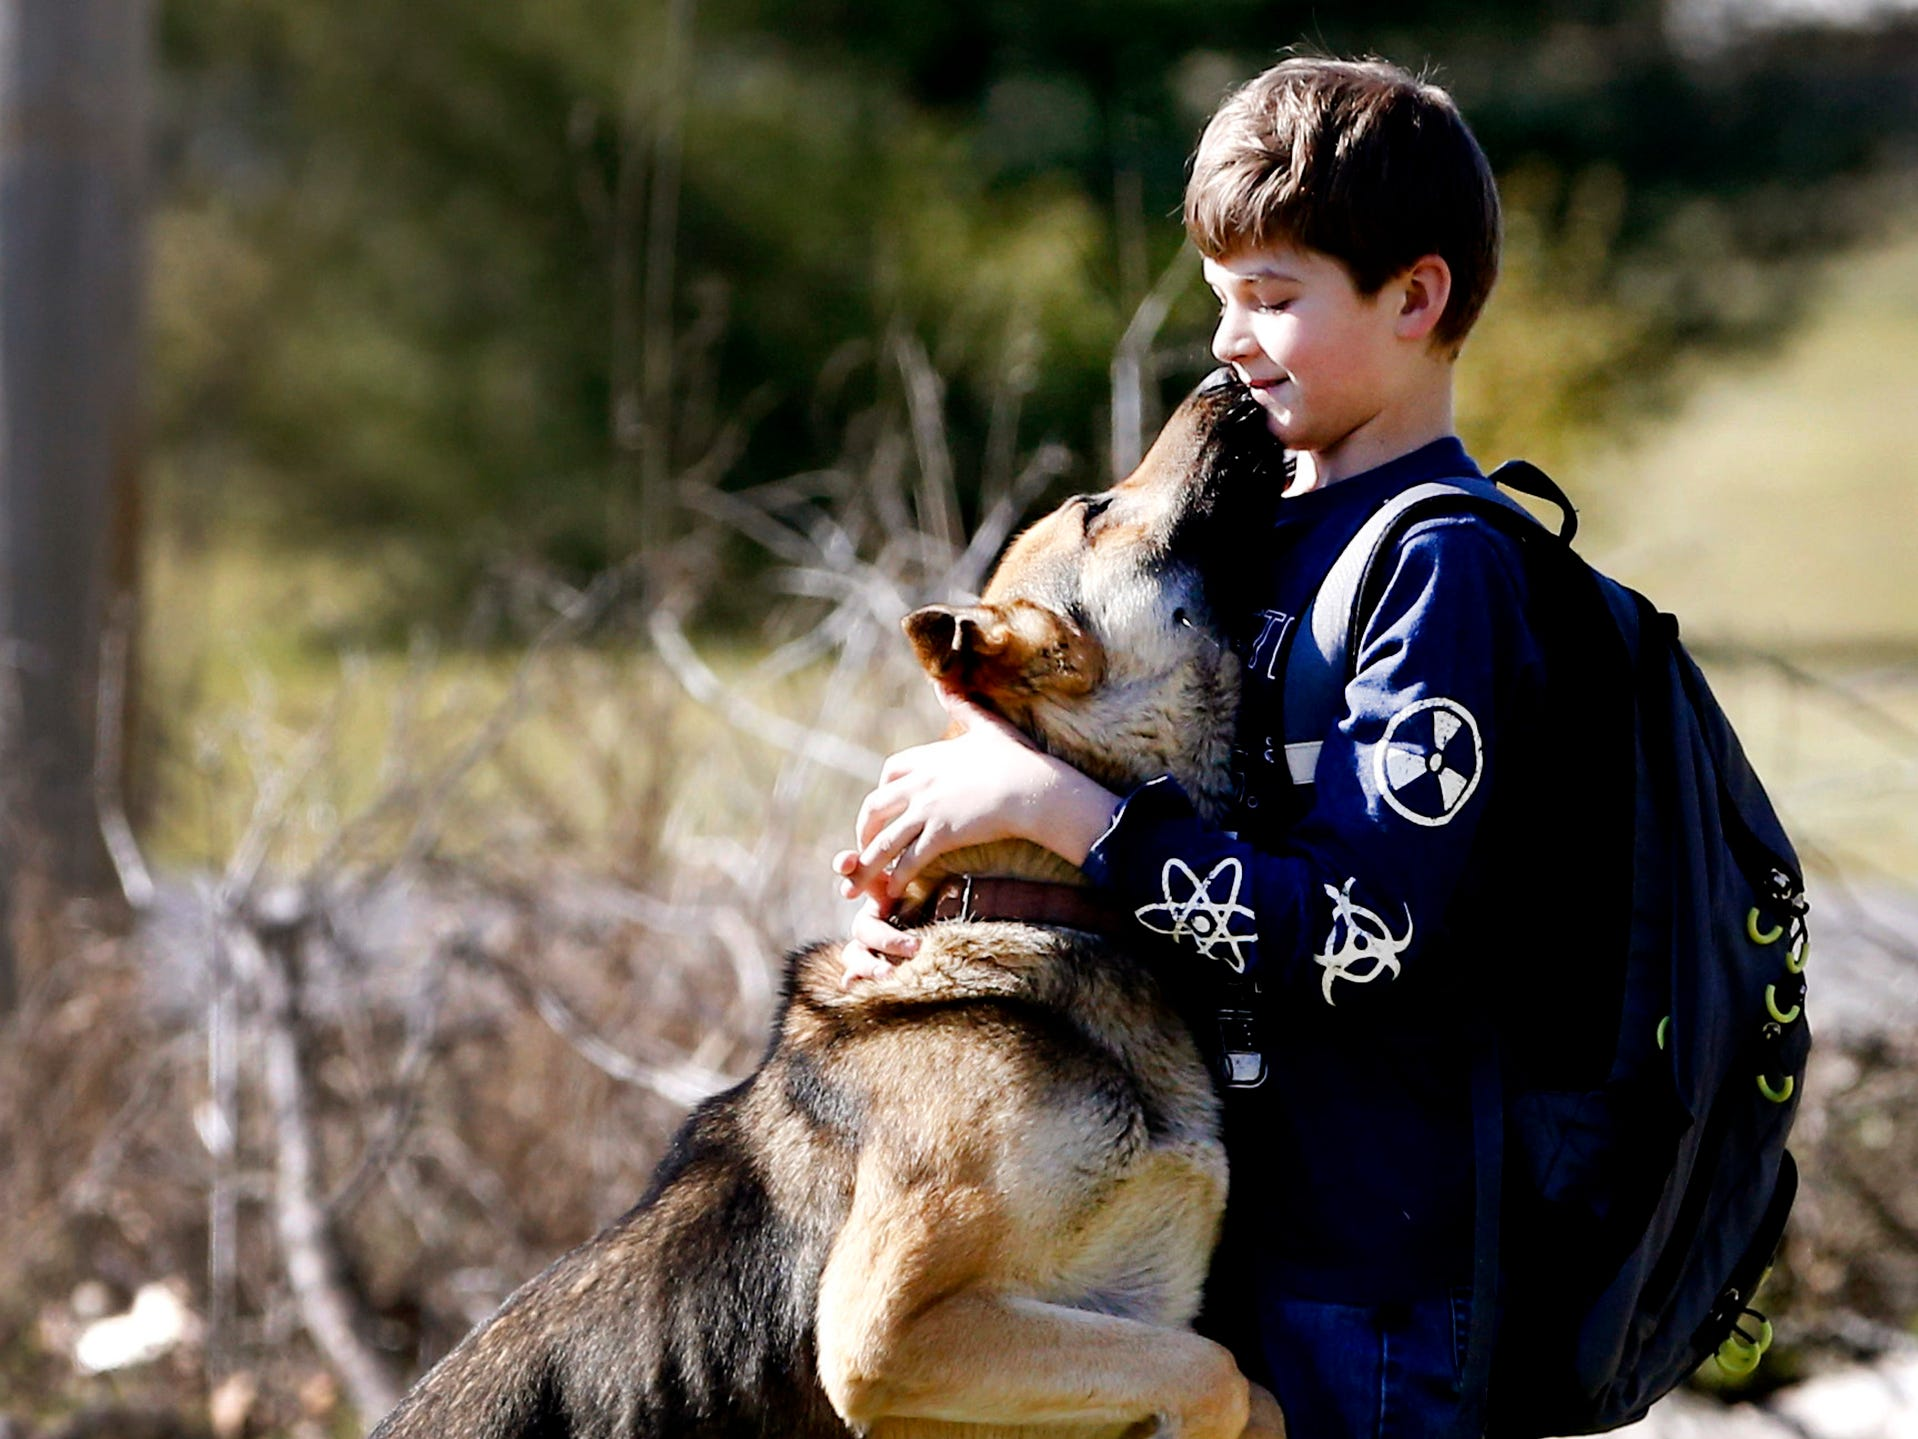 Justin White, 10, is surprised as he is greeted by his dog Goblin, on Tuesday, March 19, 2019, after Goblin had been missing from the family's Christiana home for nine days.